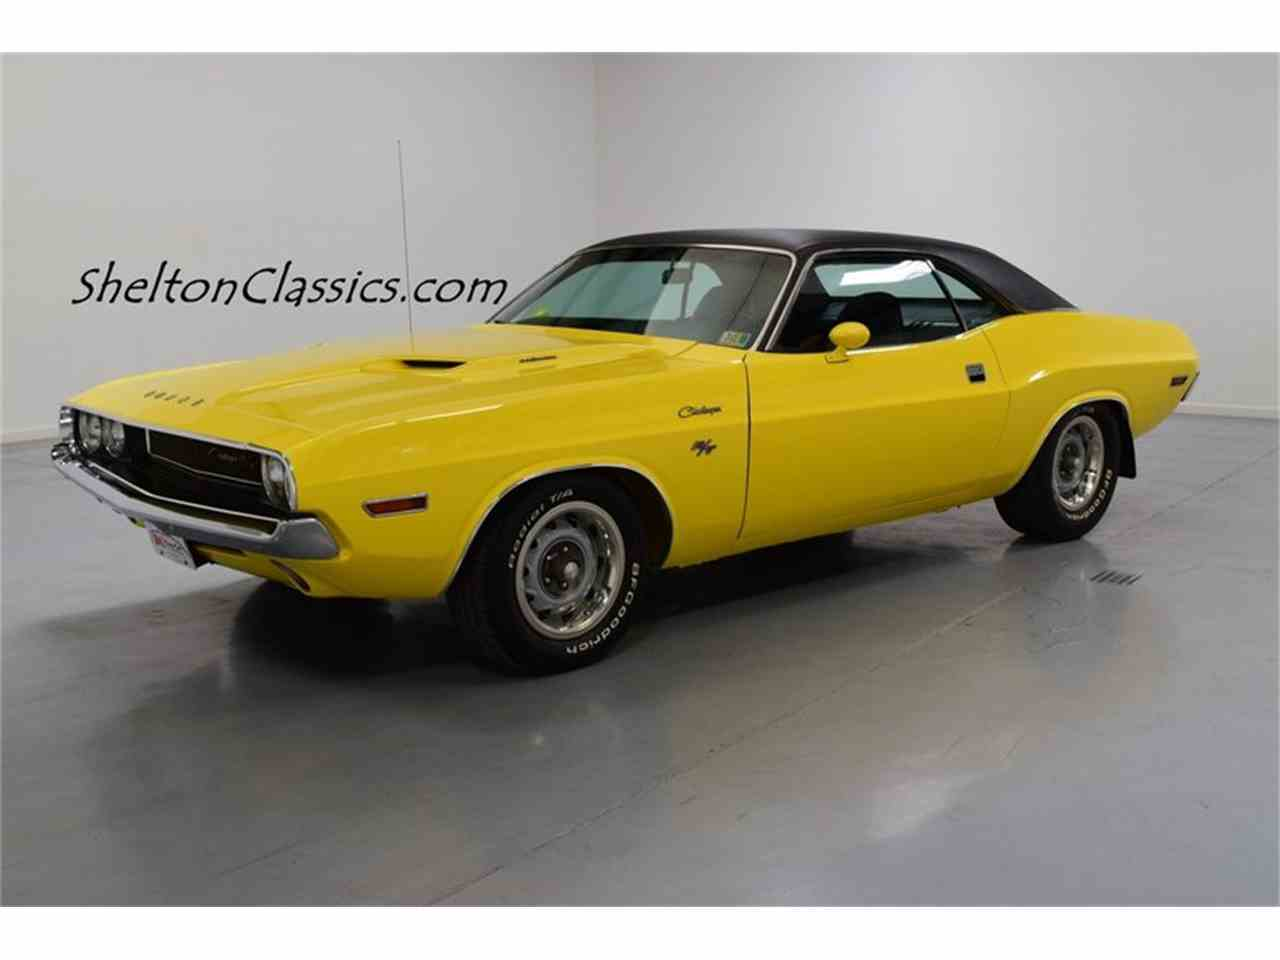 copart view auctions left challenger en of white raleigh nc for in certificate online carfinder sale salvage dodge lot on title auto